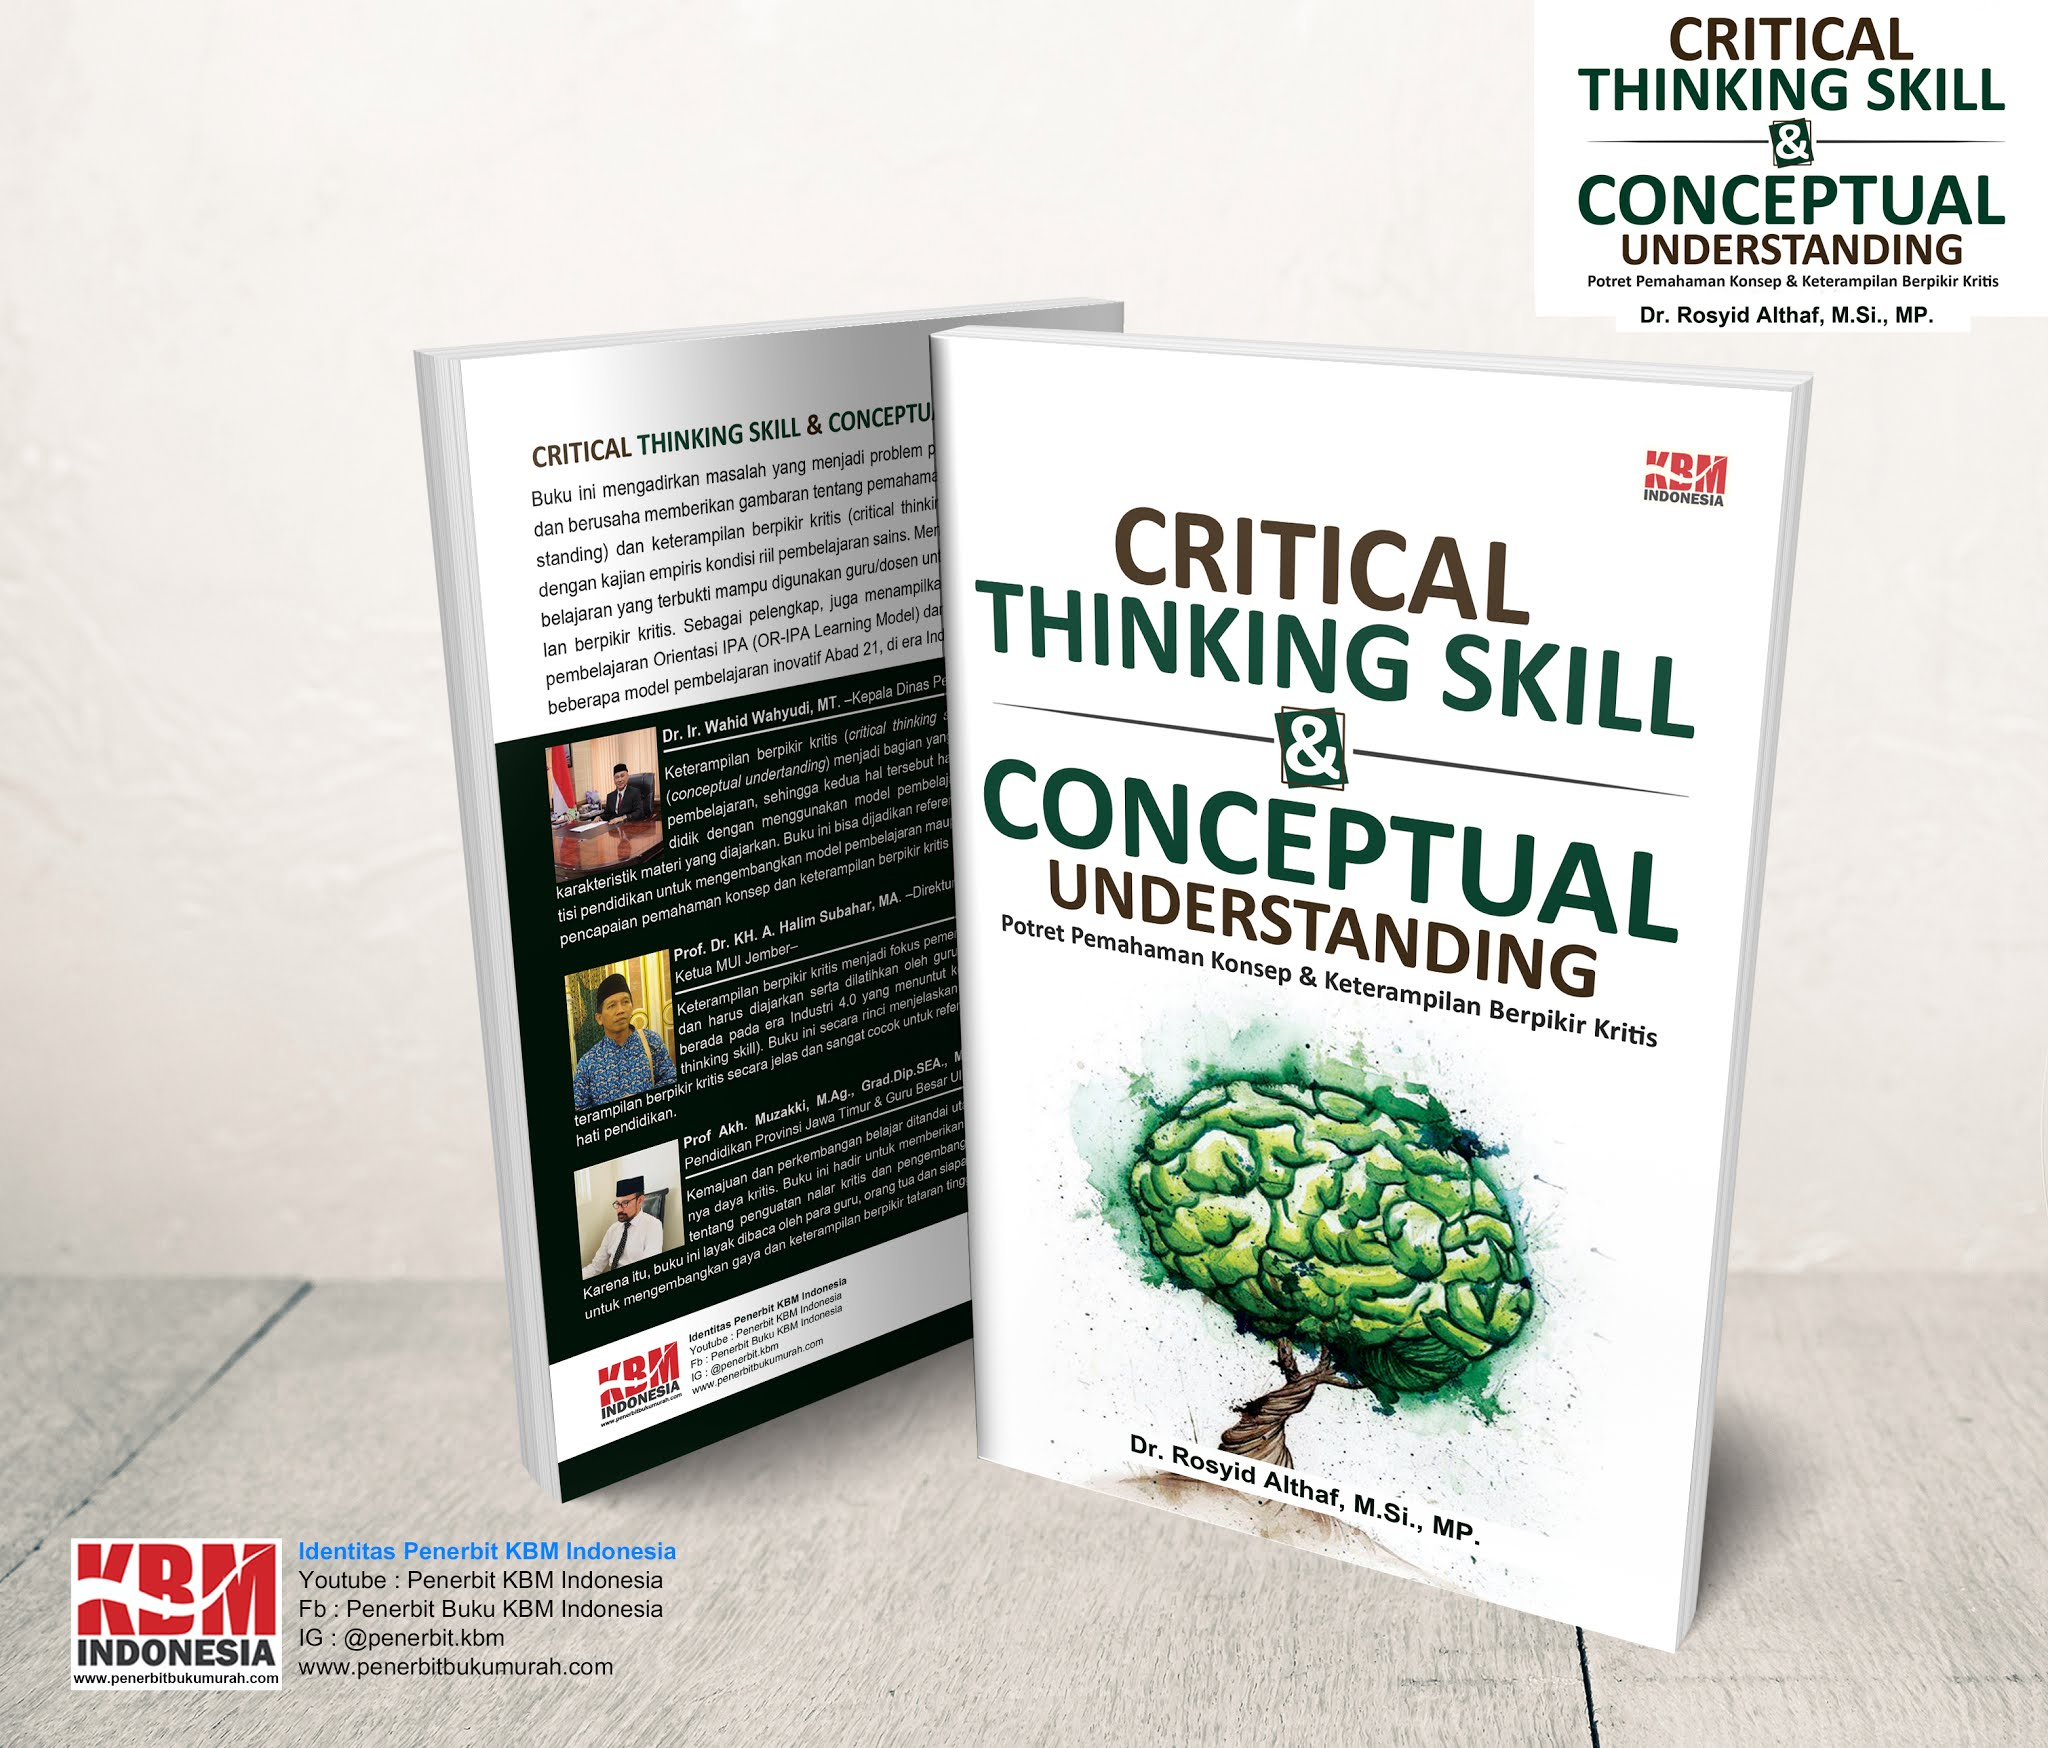 CRITICAL THINKING SKILL & CONCEPTUAL UNDERSTANDING